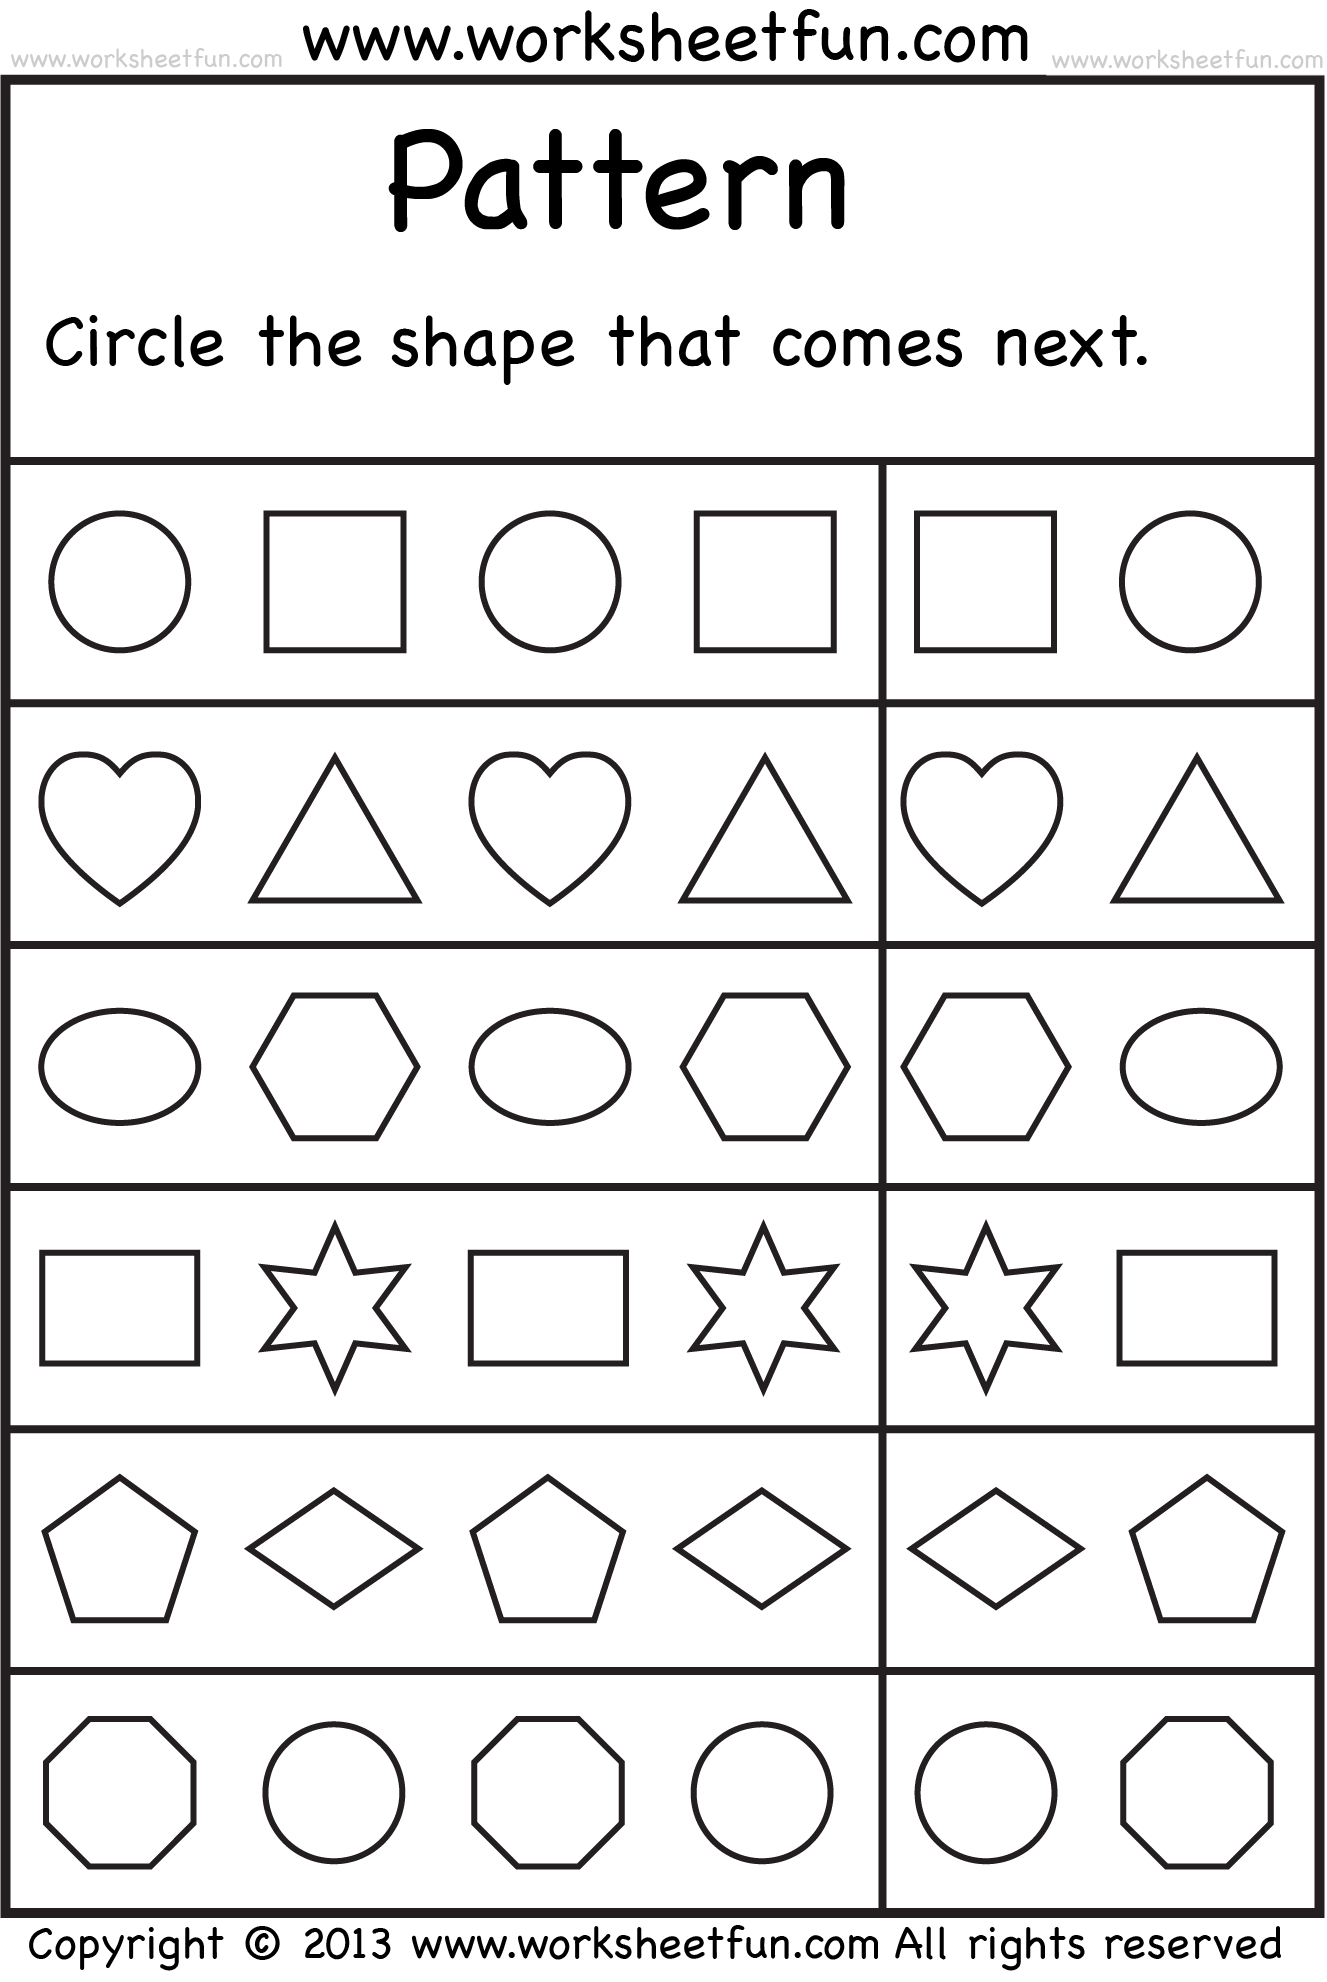 Proatmealus  Gorgeous  Images About School Worksheets On Pinterest  Number Words  With Lovable  Images About School Worksheets On Pinterest  Number Words Alphabet Worksheets And Free Printable Kindergarten Worksheets With Attractive Spelling Test Worksheet Also Commutative And Associative Properties Worksheet In Addition Fossil Record Worksheet And Parallel Perpendicular And Intersecting Lines Worksheet As Well As Learning To Write Worksheets Additionally Worksheet On Chemical Vs Physical Properties And Changes Answers From Pinterestcom With Proatmealus  Lovable  Images About School Worksheets On Pinterest  Number Words  With Attractive  Images About School Worksheets On Pinterest  Number Words Alphabet Worksheets And Free Printable Kindergarten Worksheets And Gorgeous Spelling Test Worksheet Also Commutative And Associative Properties Worksheet In Addition Fossil Record Worksheet From Pinterestcom